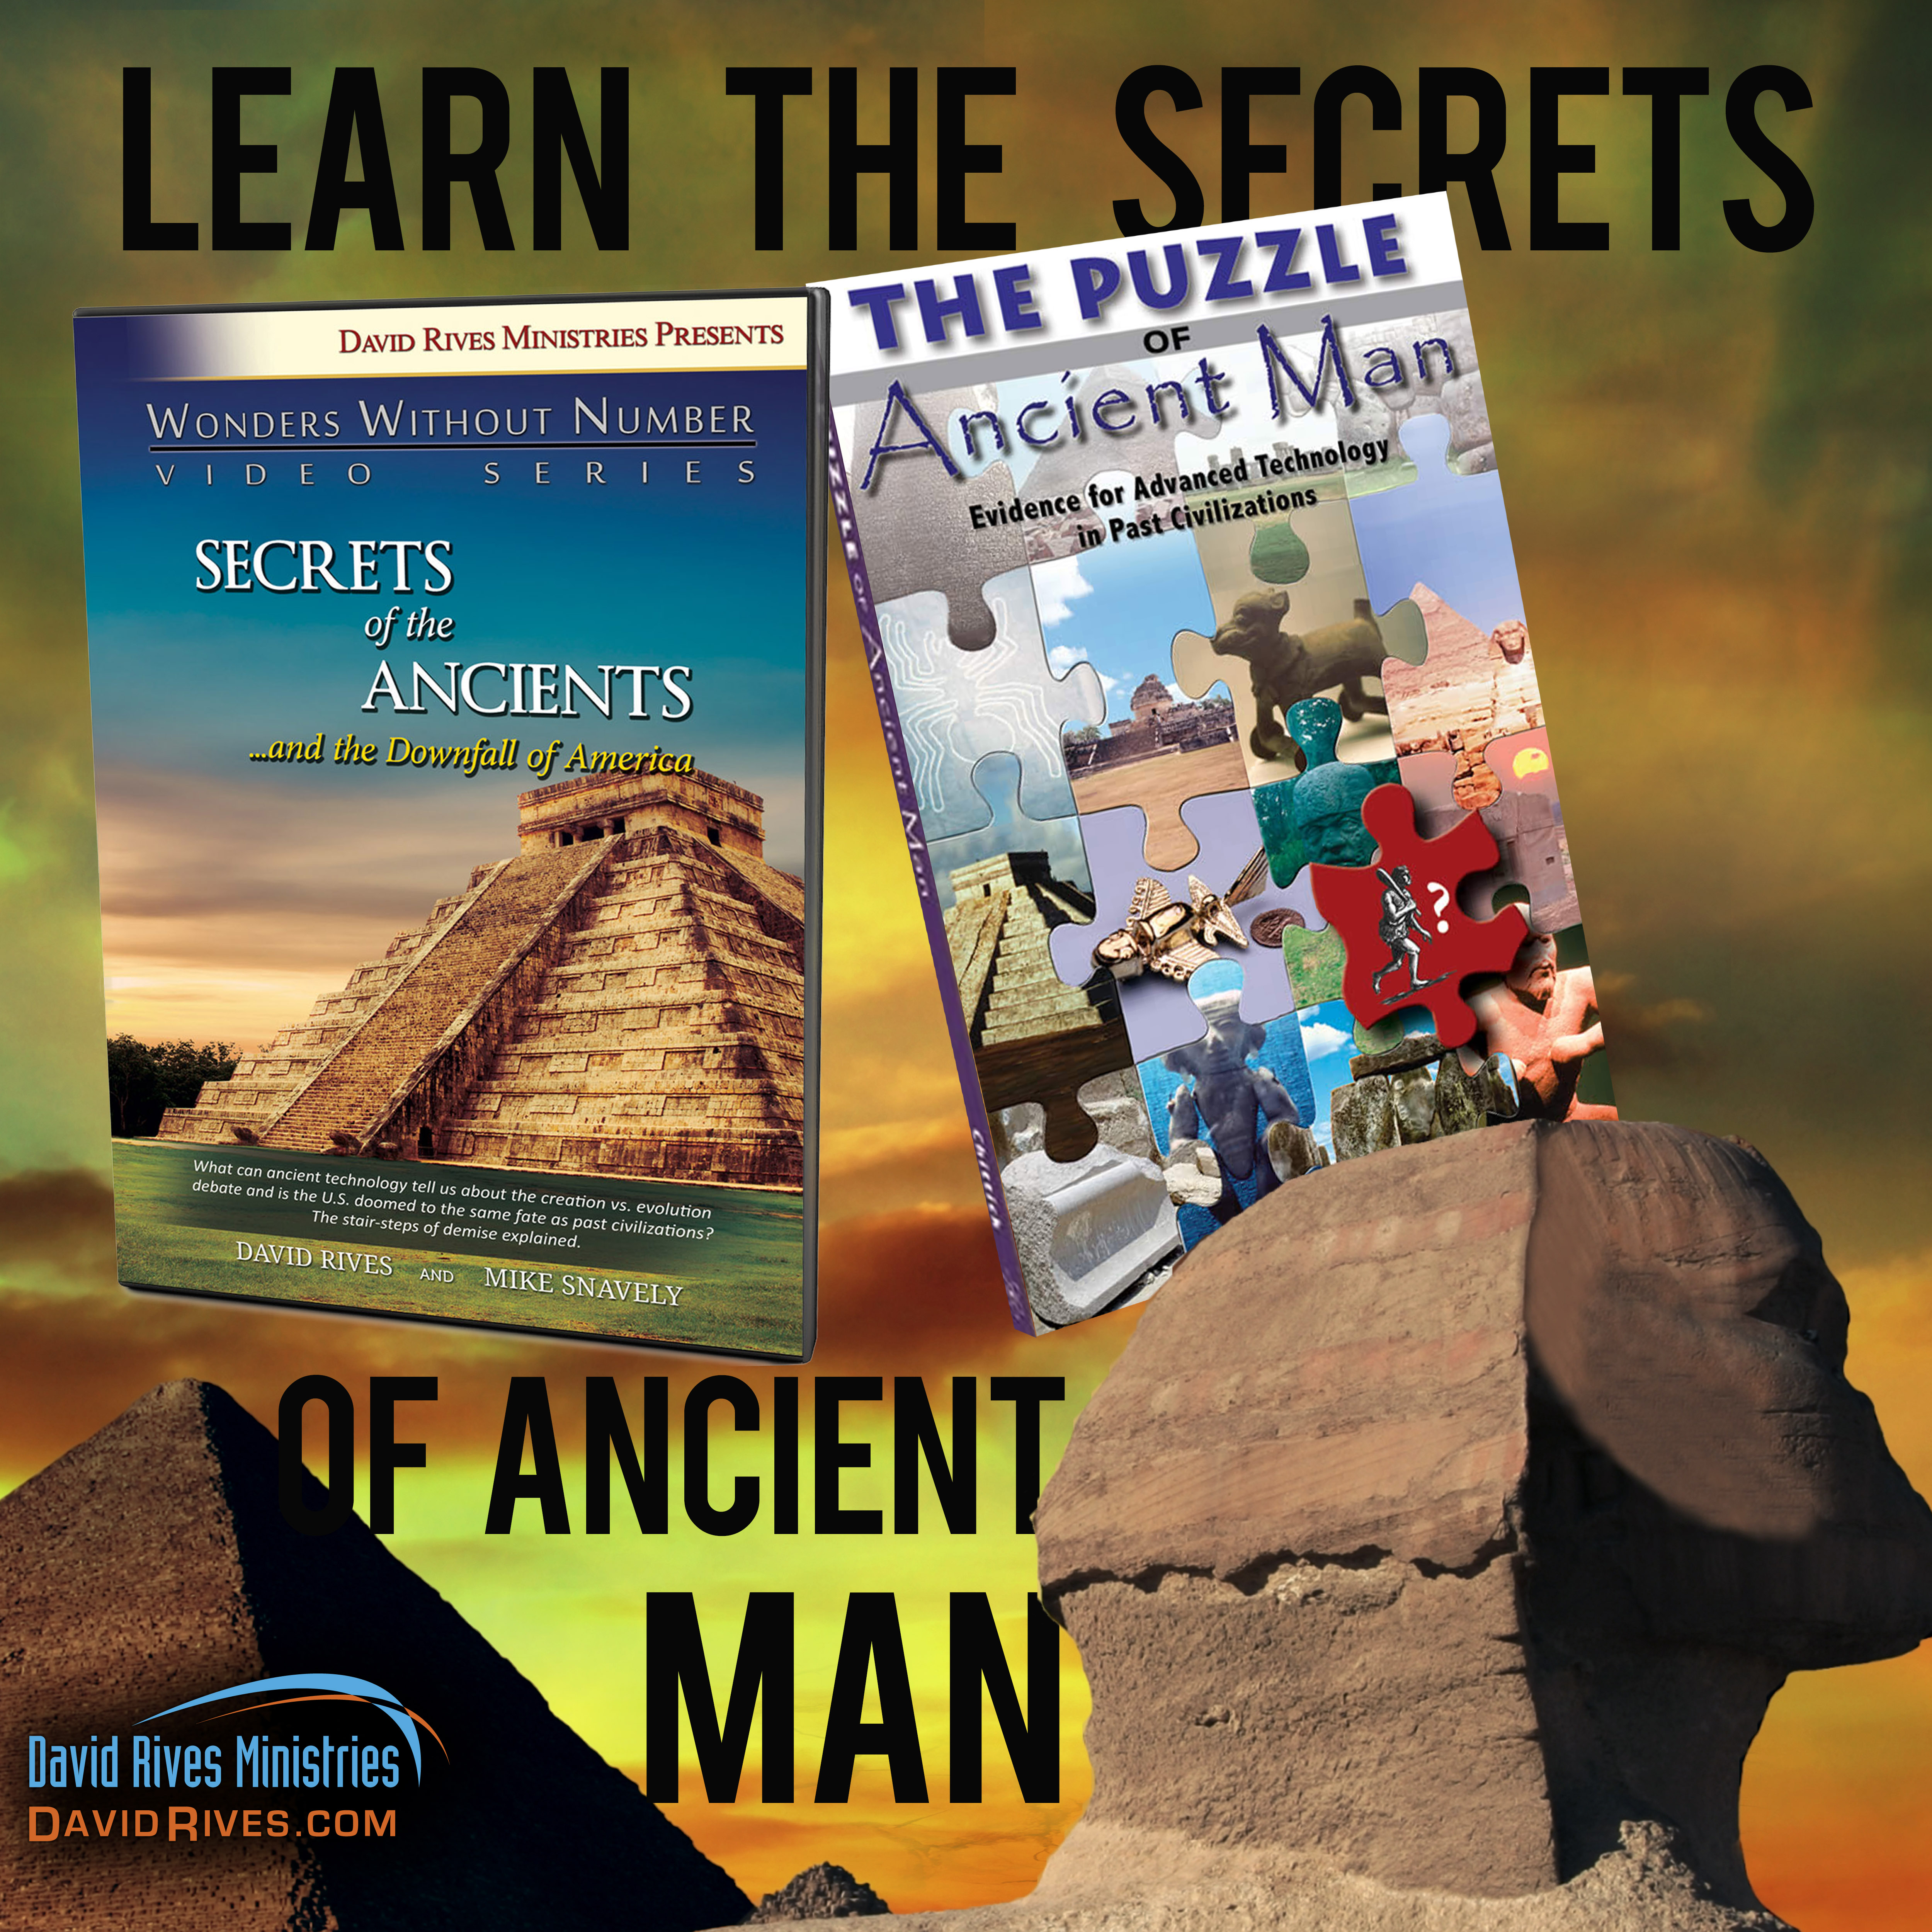 The Ancient Man Book and DVD Combo